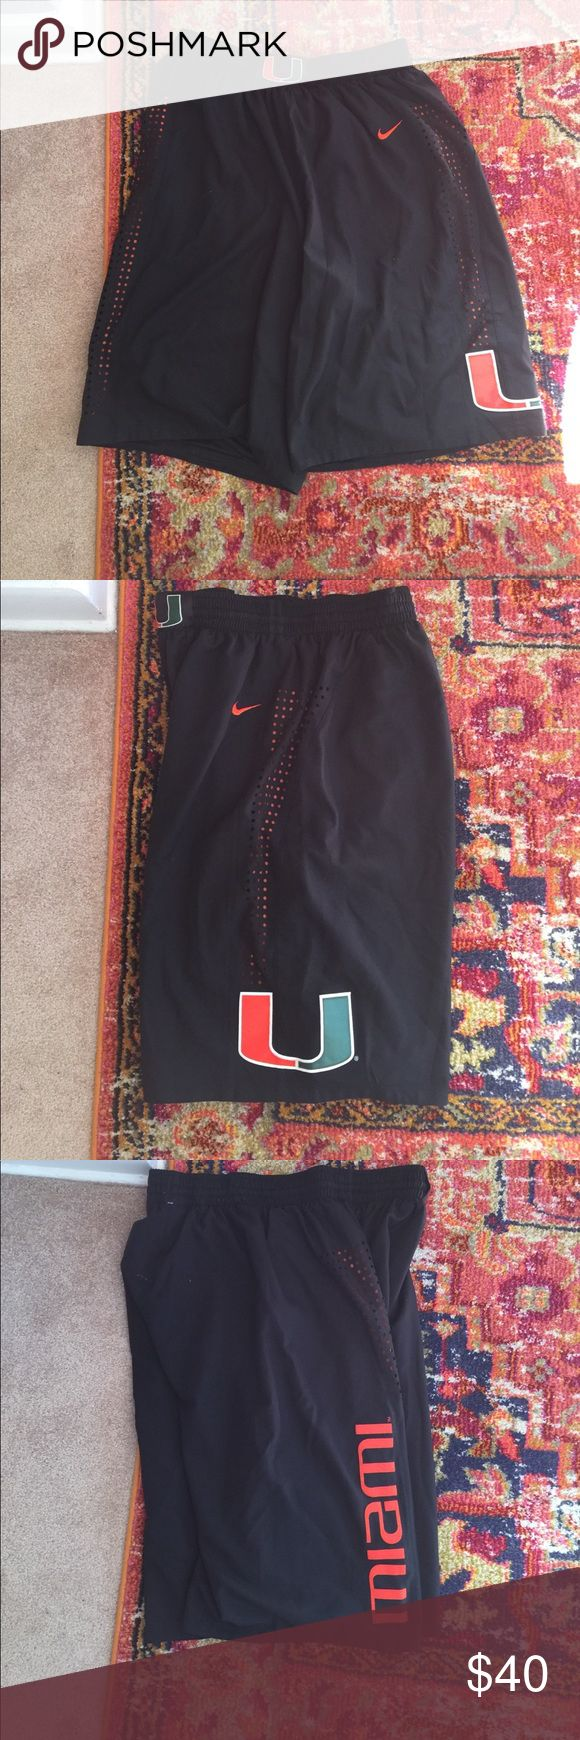 Nike Men's XL University of Miami Hurricanes short Excellent condition! Barely worn. Mens xl Nike University of Miami basketball shorts. These are the same model that are worn in games. All letters and logos are stitched. Nike Shorts Athletic